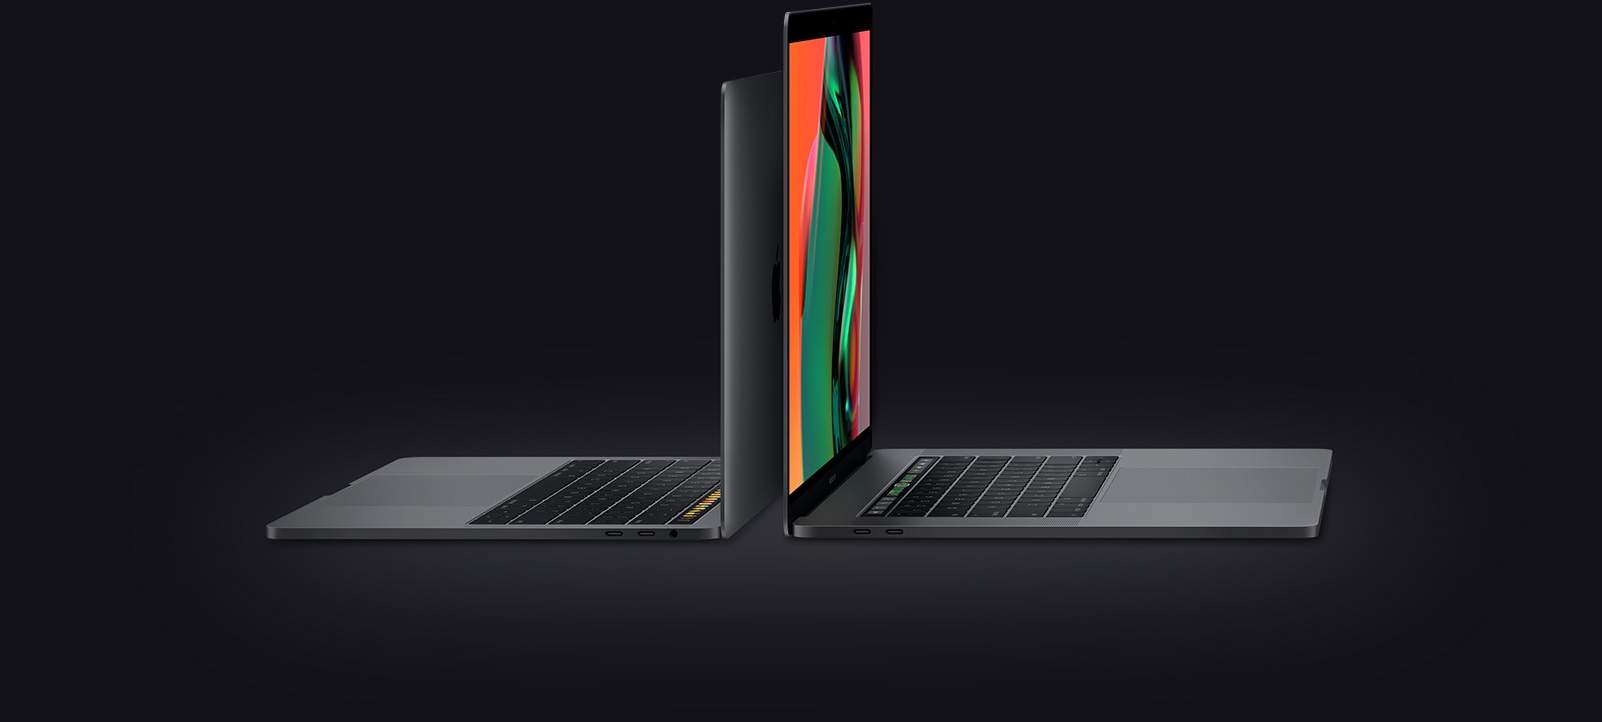 MacBook Pro models